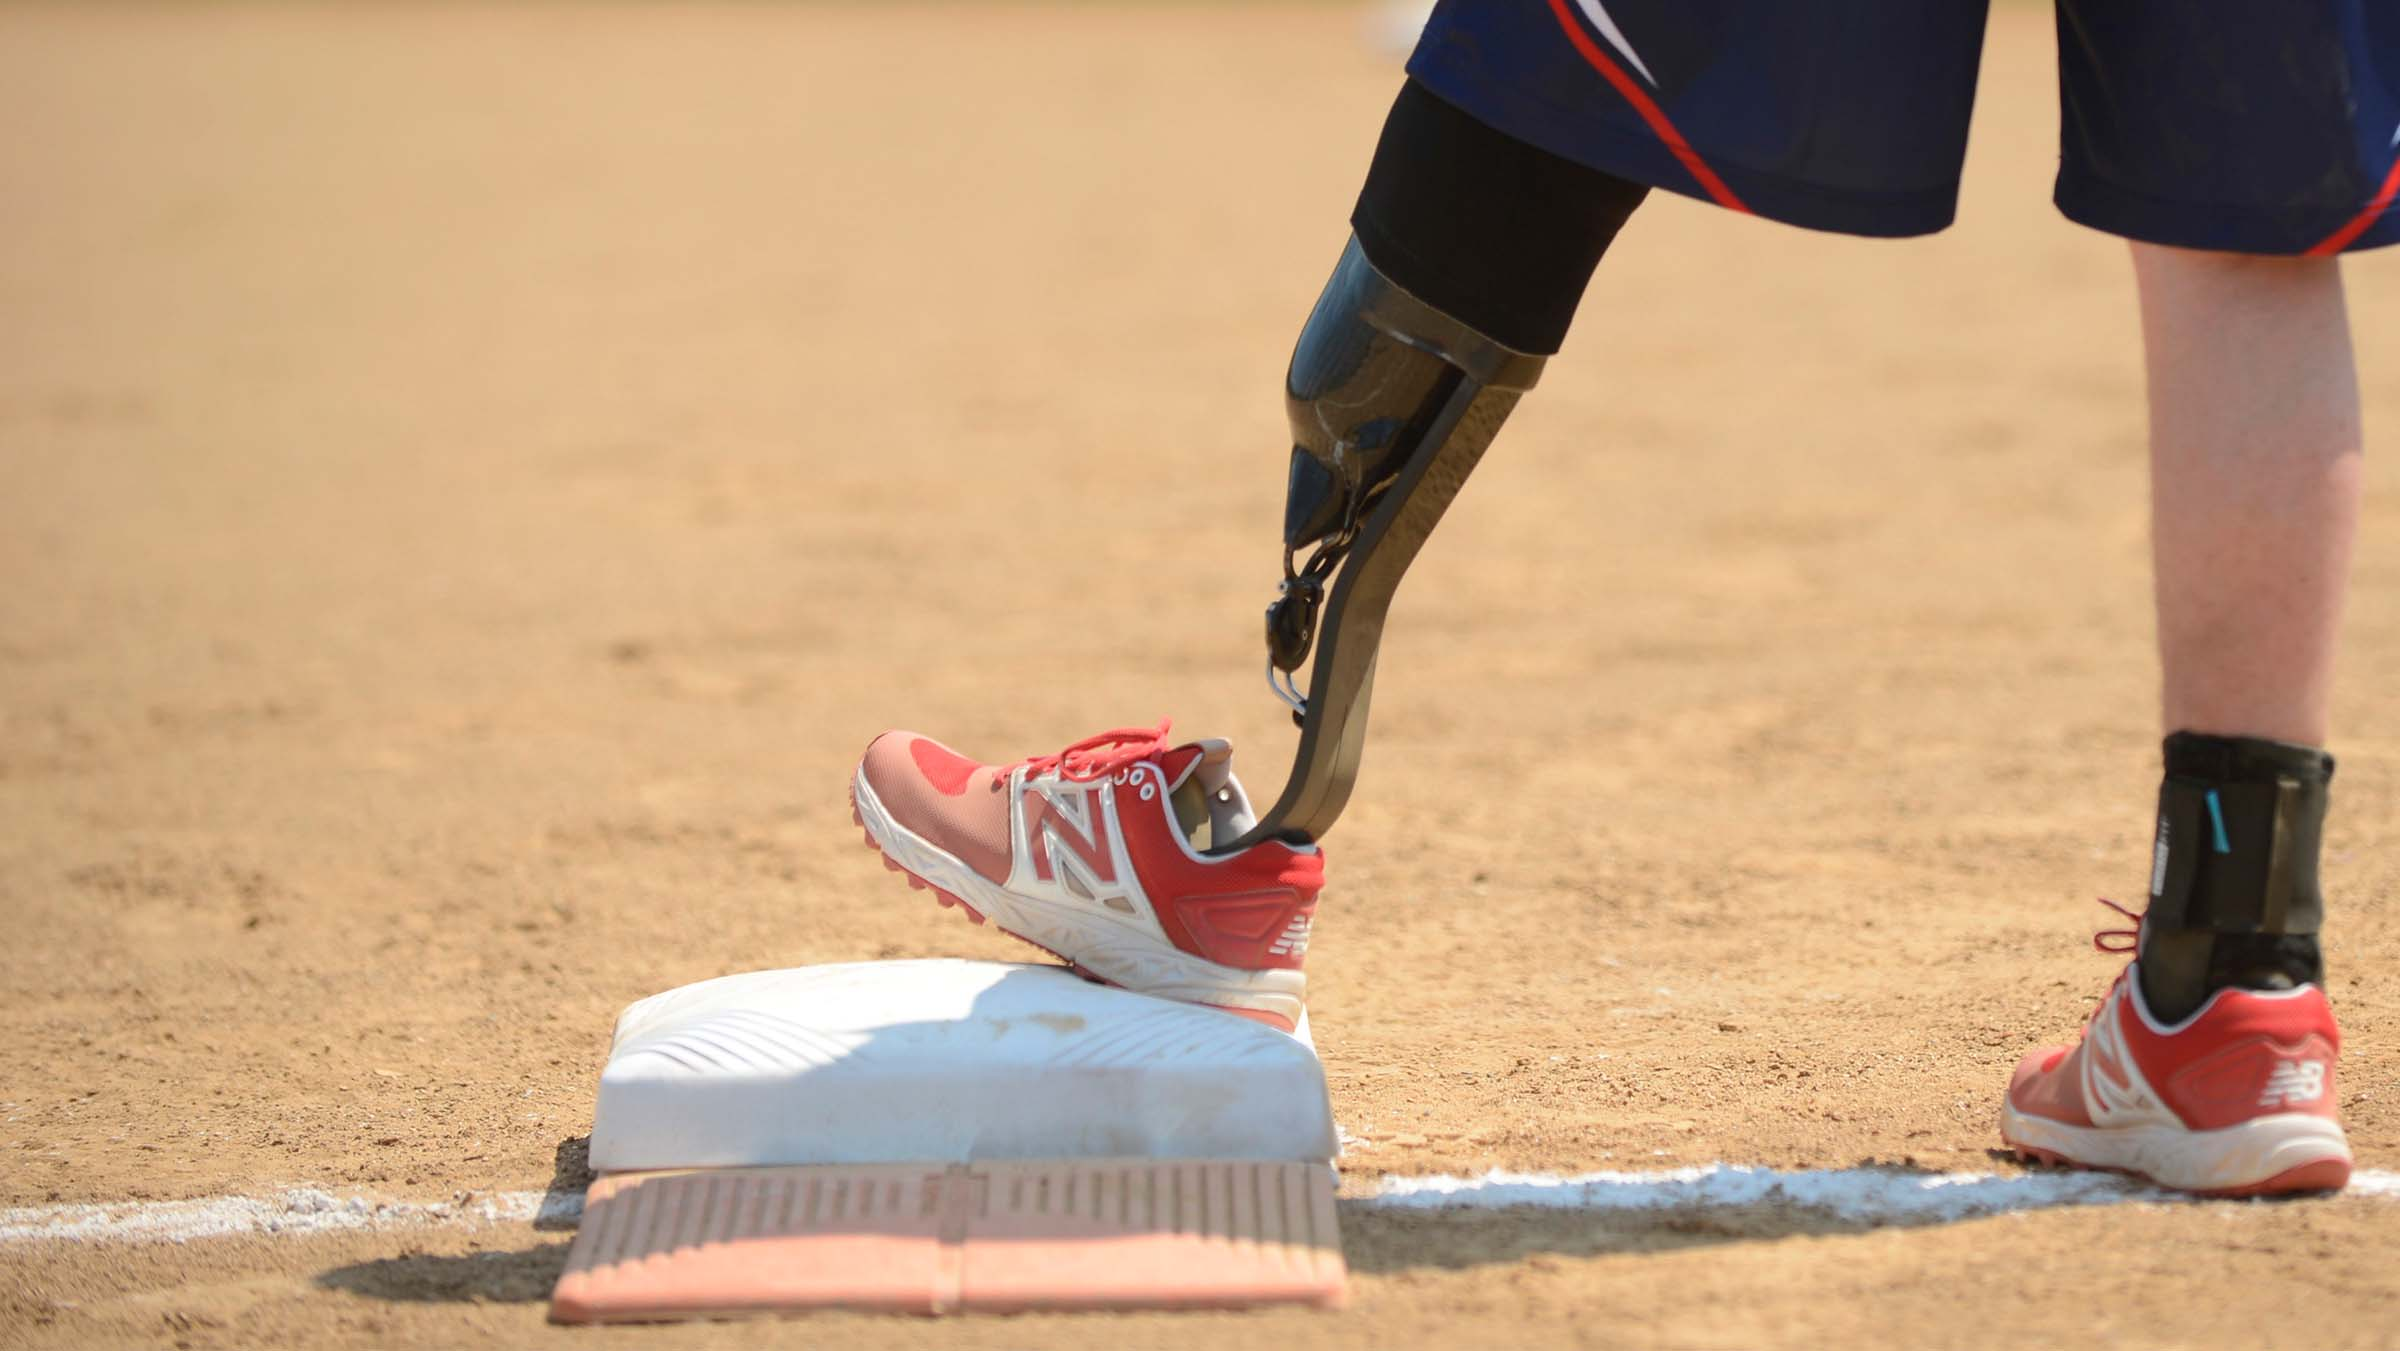 A Wounded Warrior Amputee Softball Team member stands on first base.